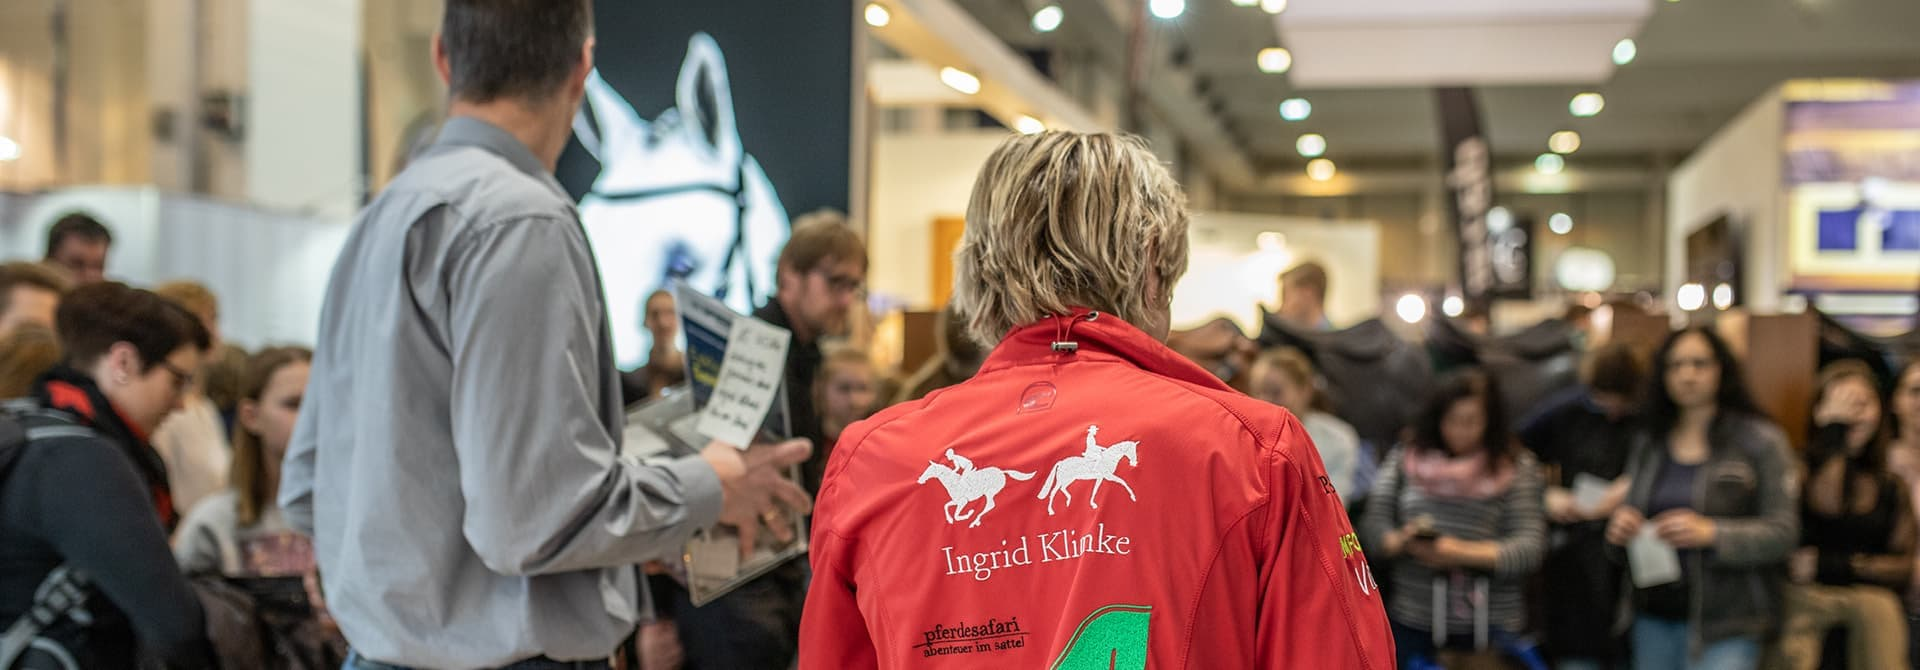 Equitana Fair Ingrid Klimke signing session